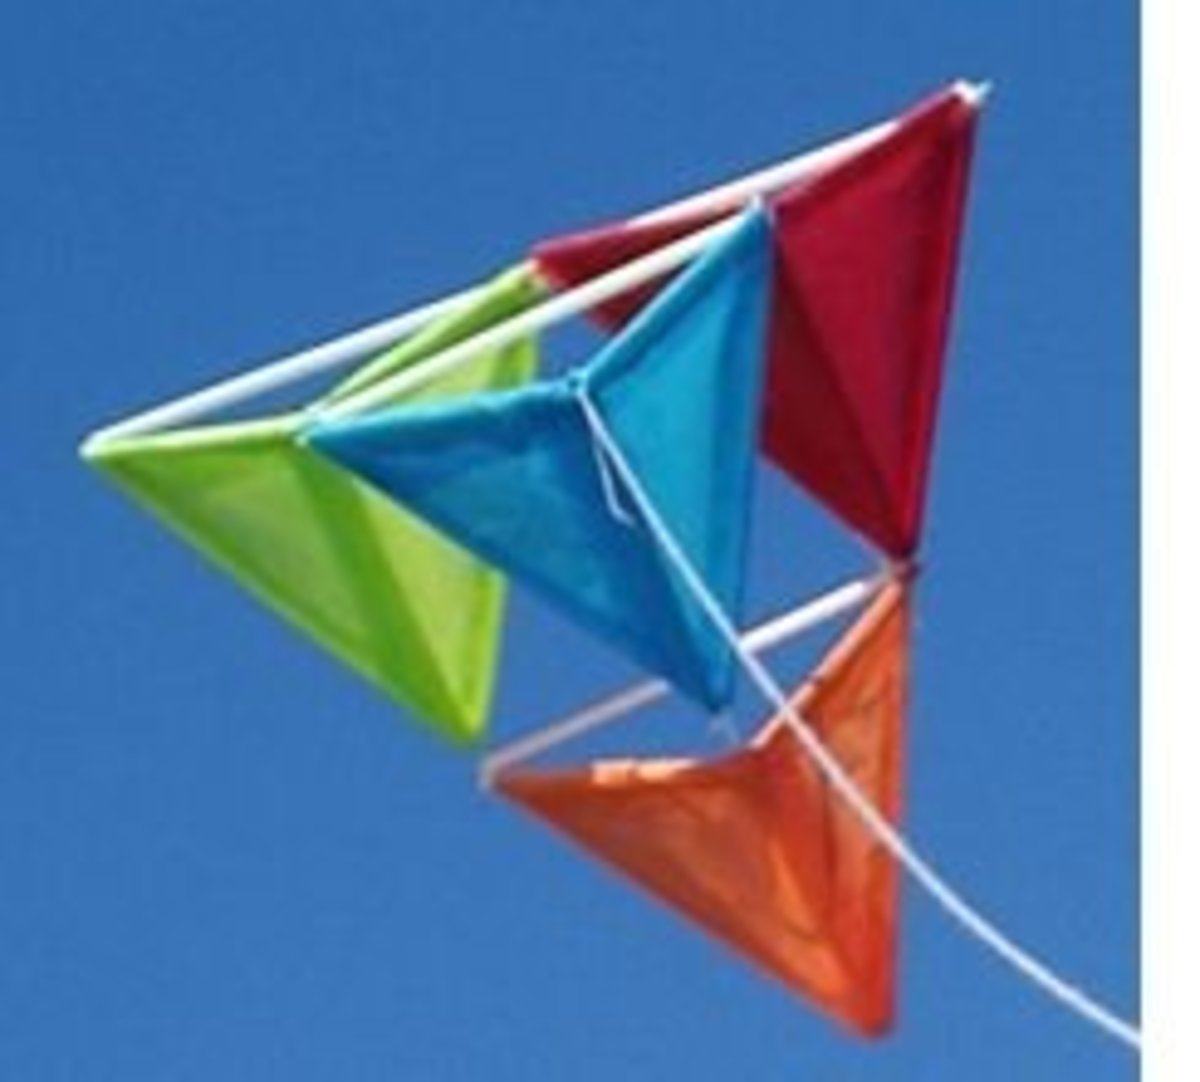 The Tetrahedral Kite: Easy to Make, Easy to Fly!